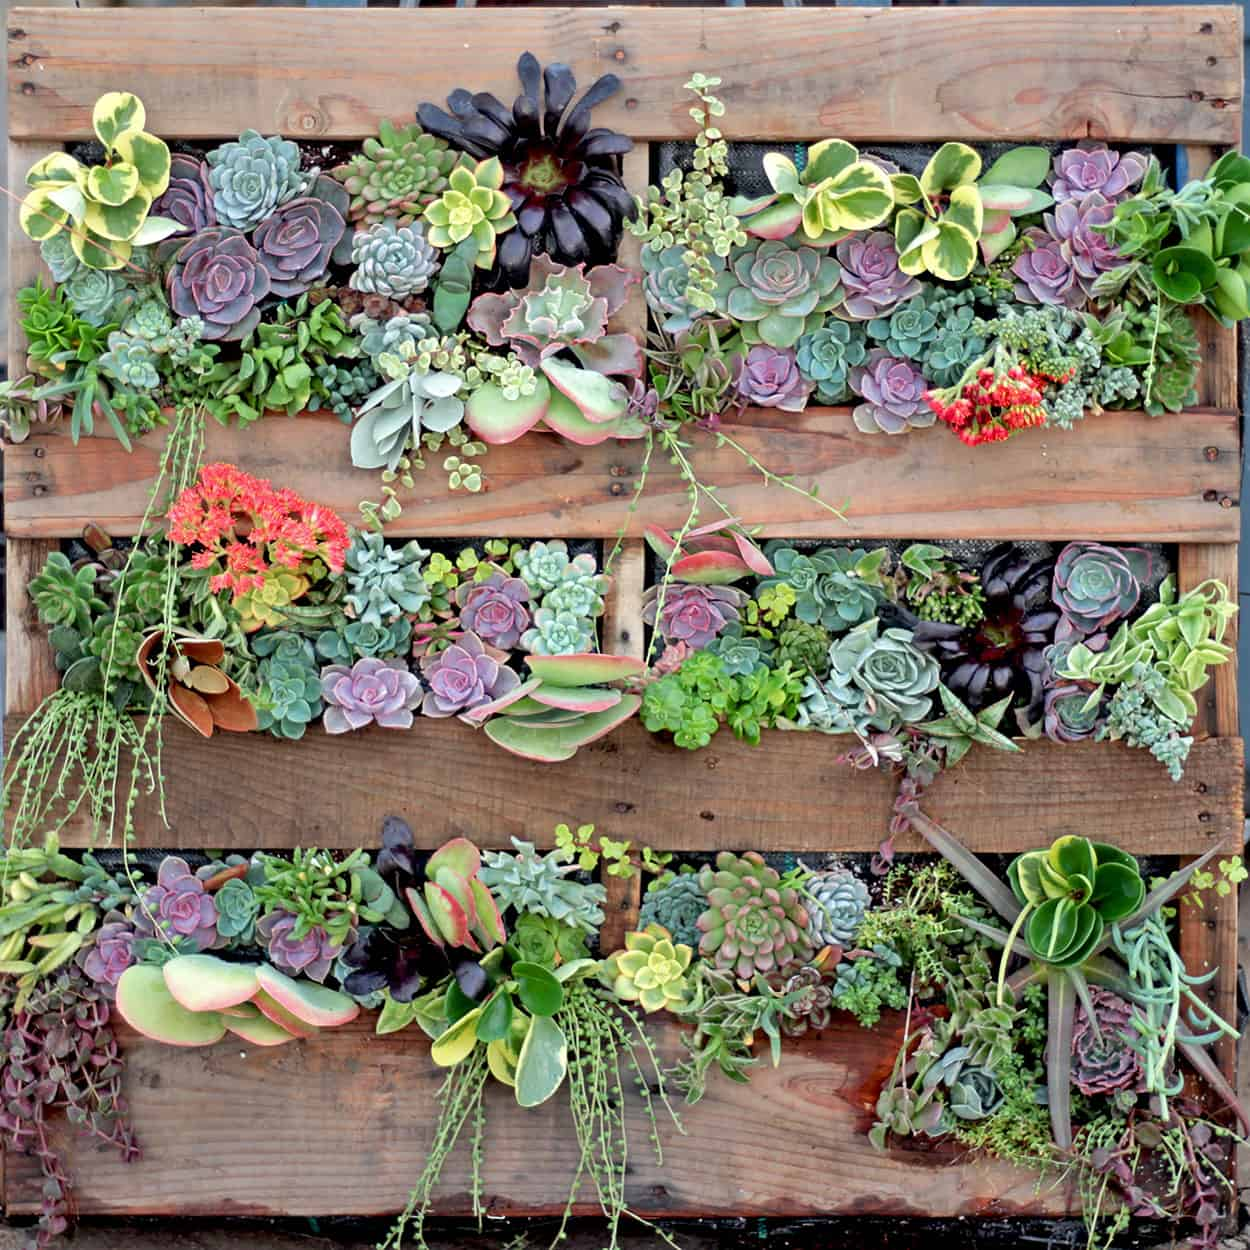 Upcycled pallet succulent living wall